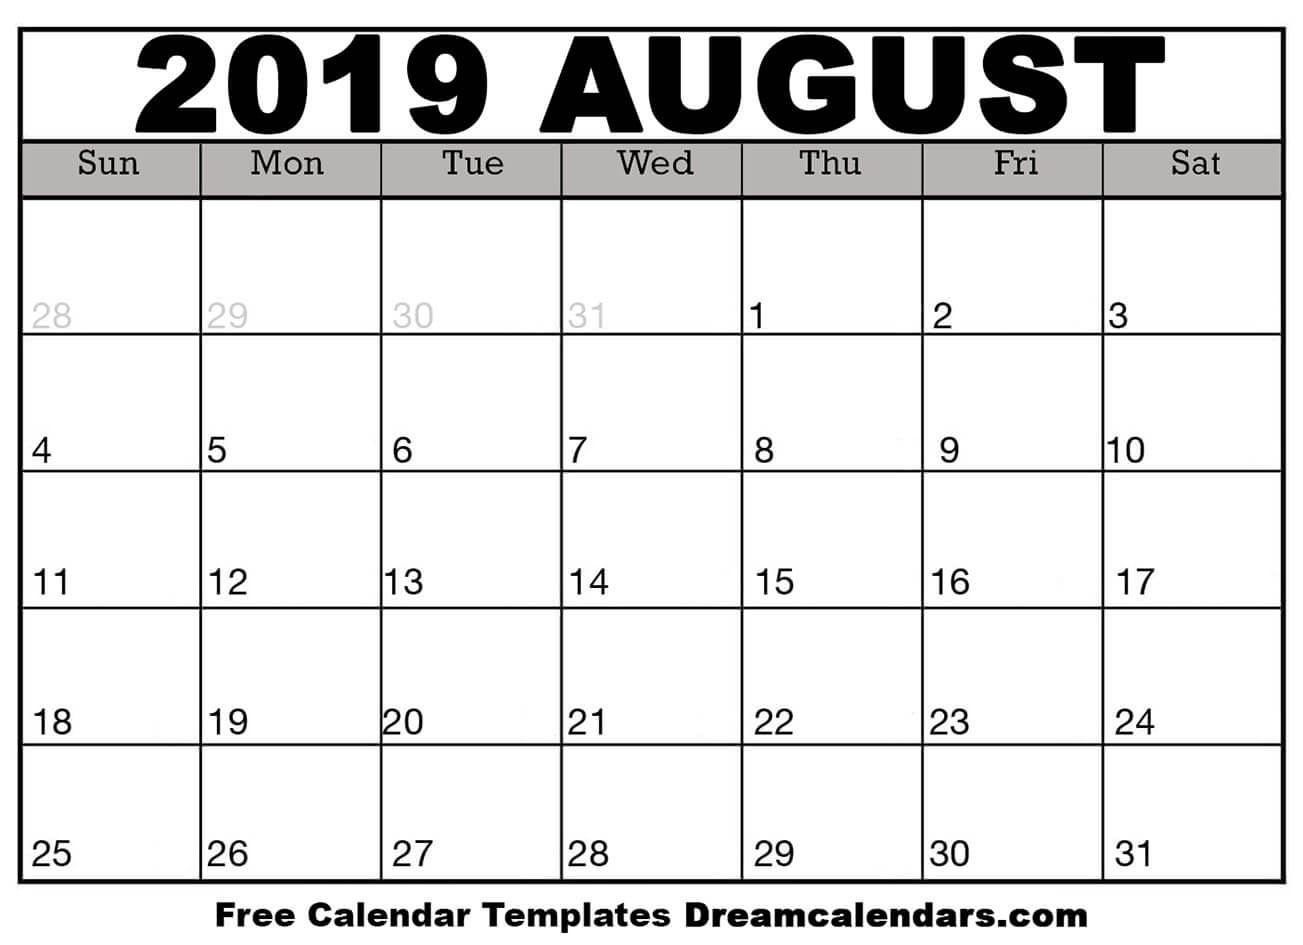 image relating to Printable Calendar Aug referred to as August 2019 Calendar